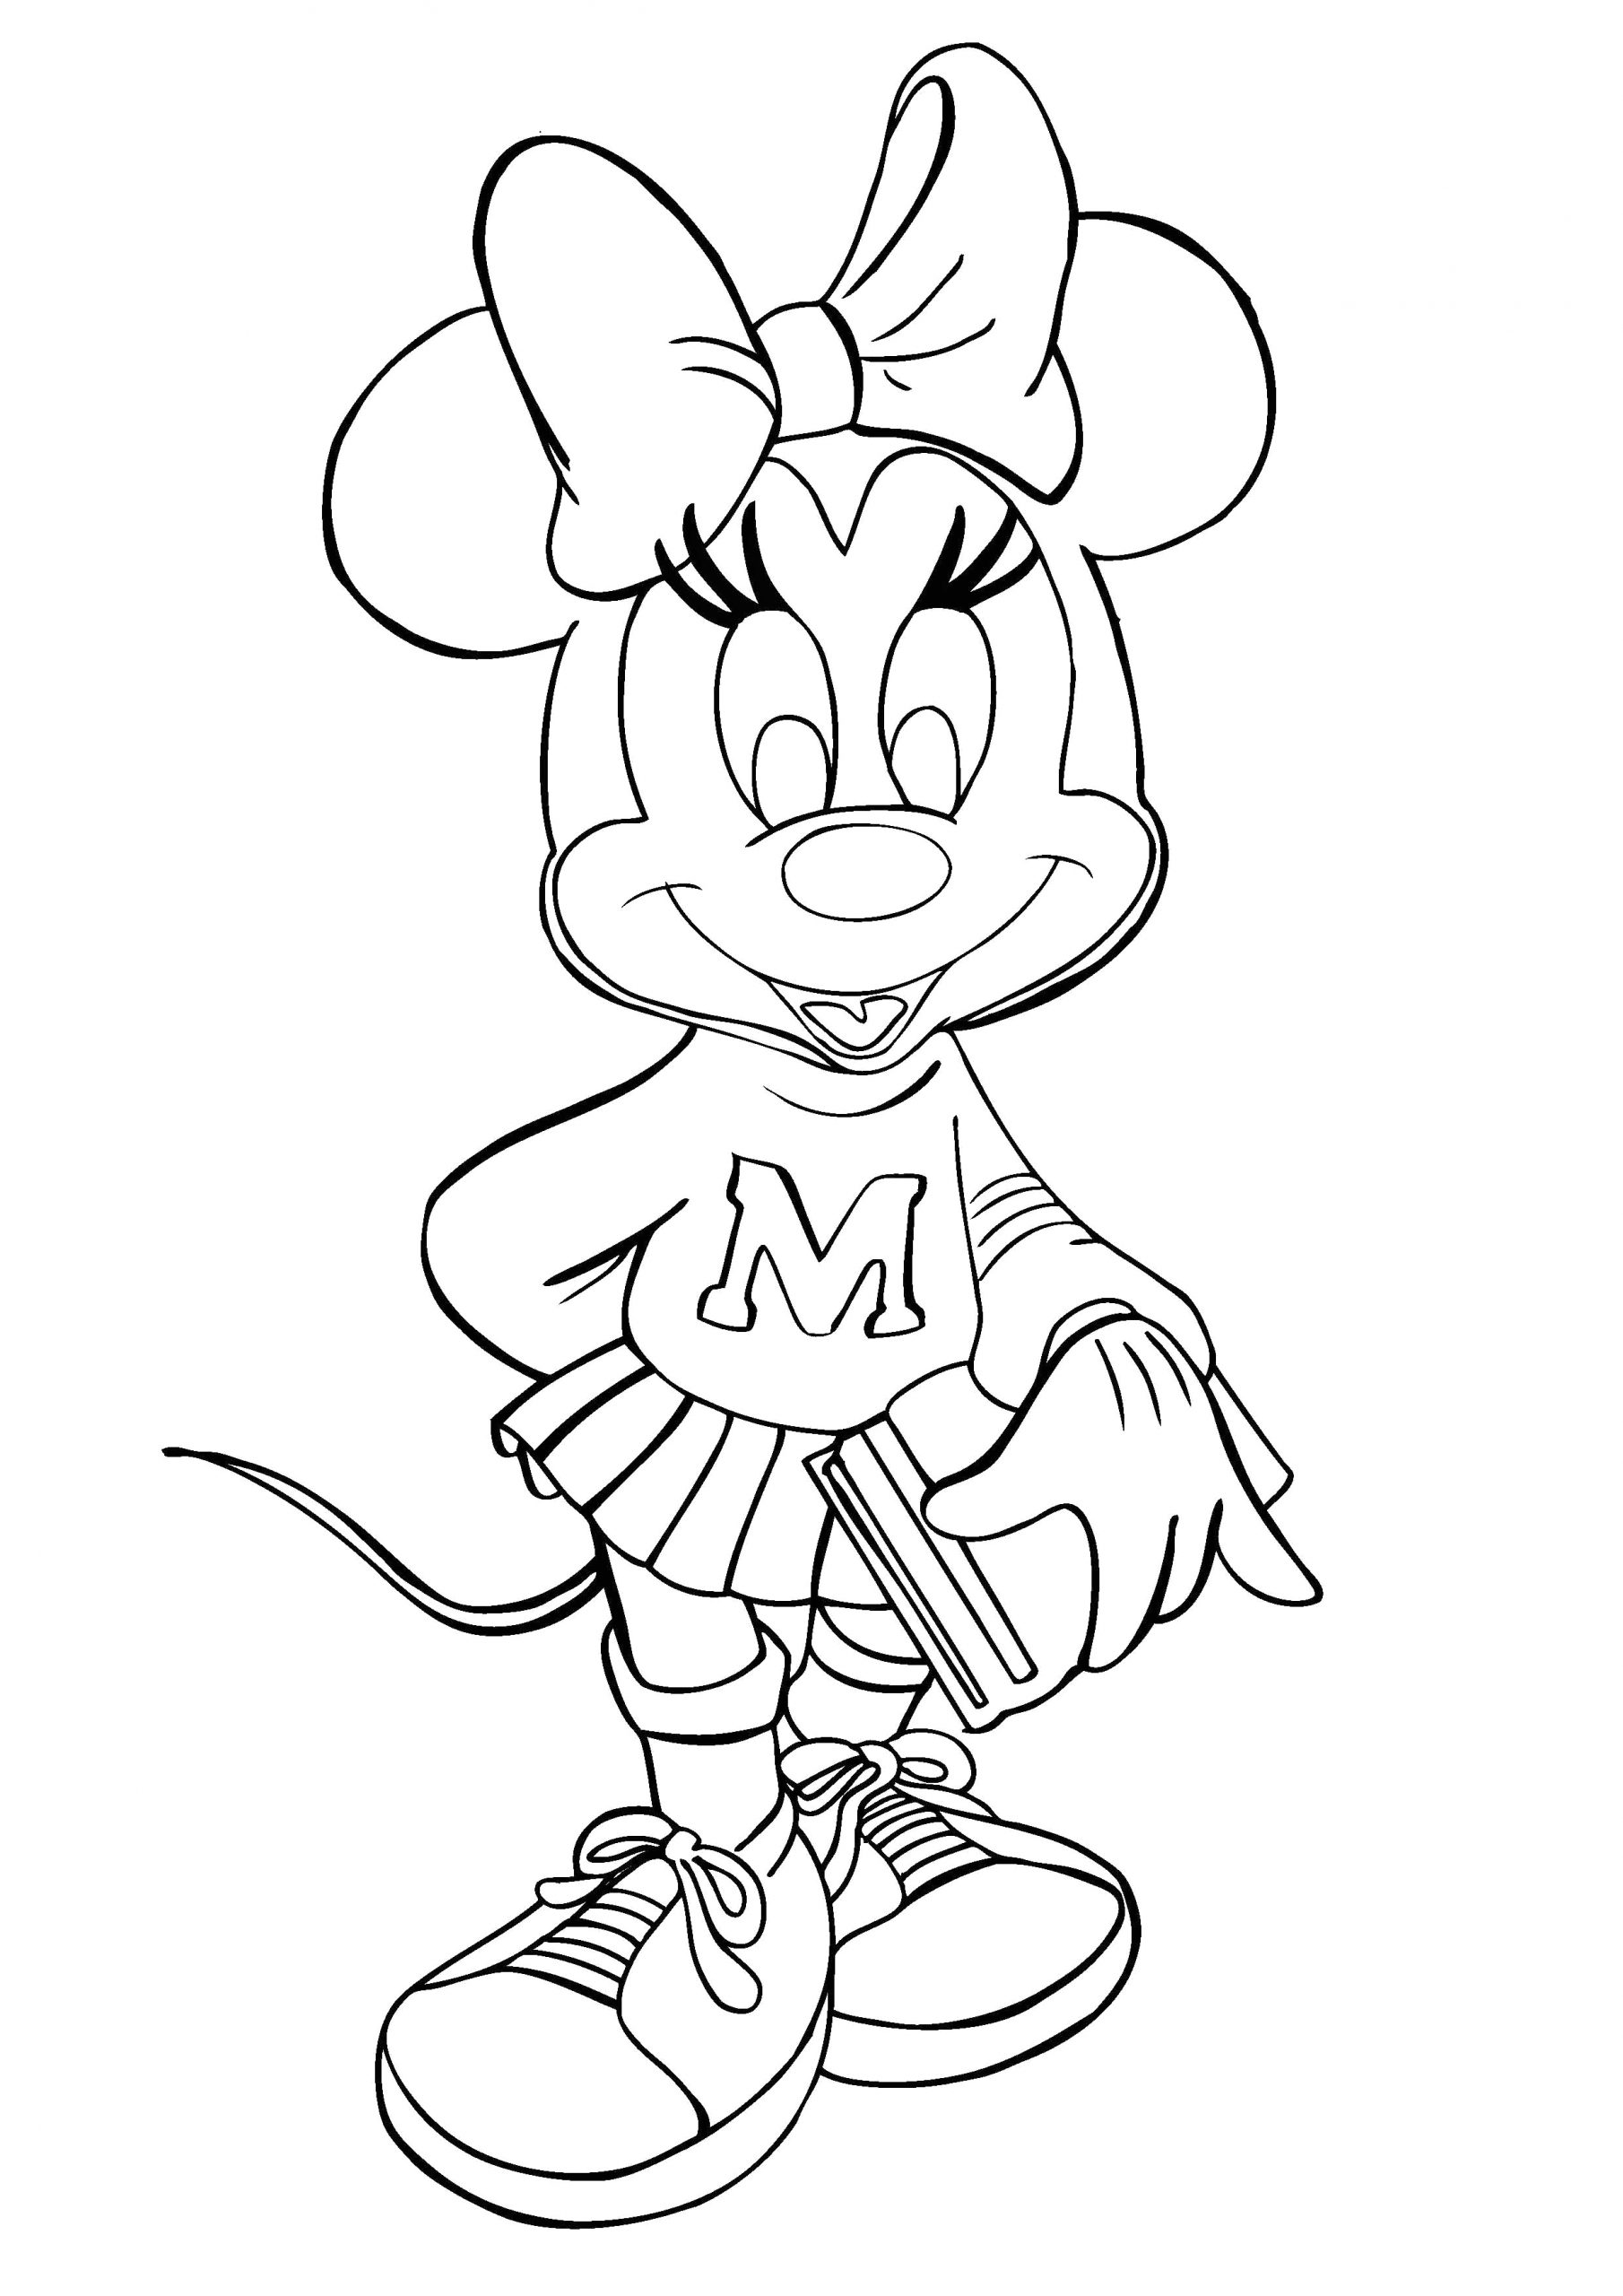 Free Printable Coloring Pages Of Minnie Mouse Free Printable Minnie Mouse Coloring Pages for Kids